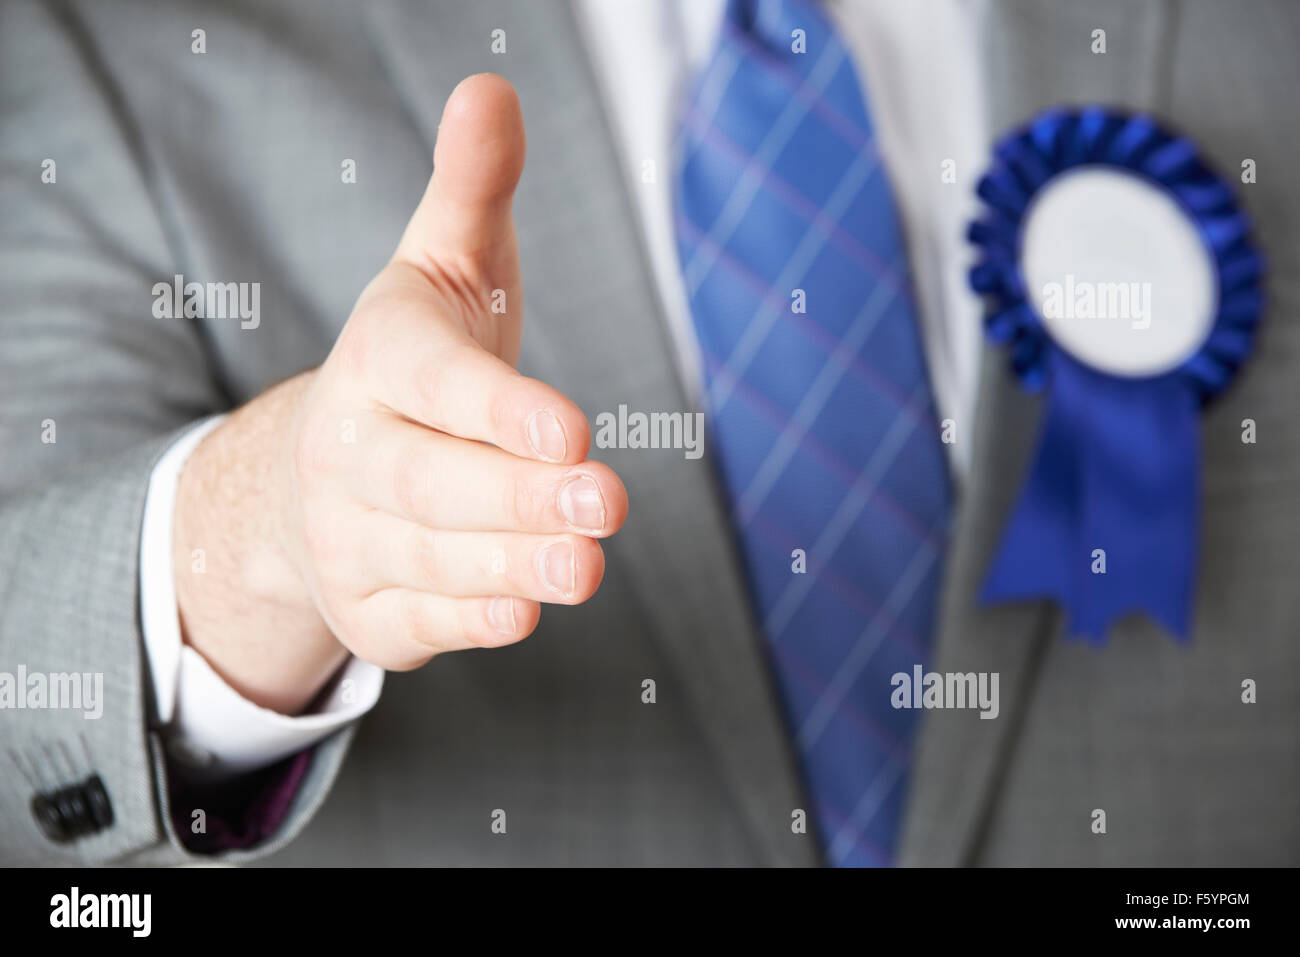 Close Up Of Politician Reaching Out To Shake Hands - Stock Image